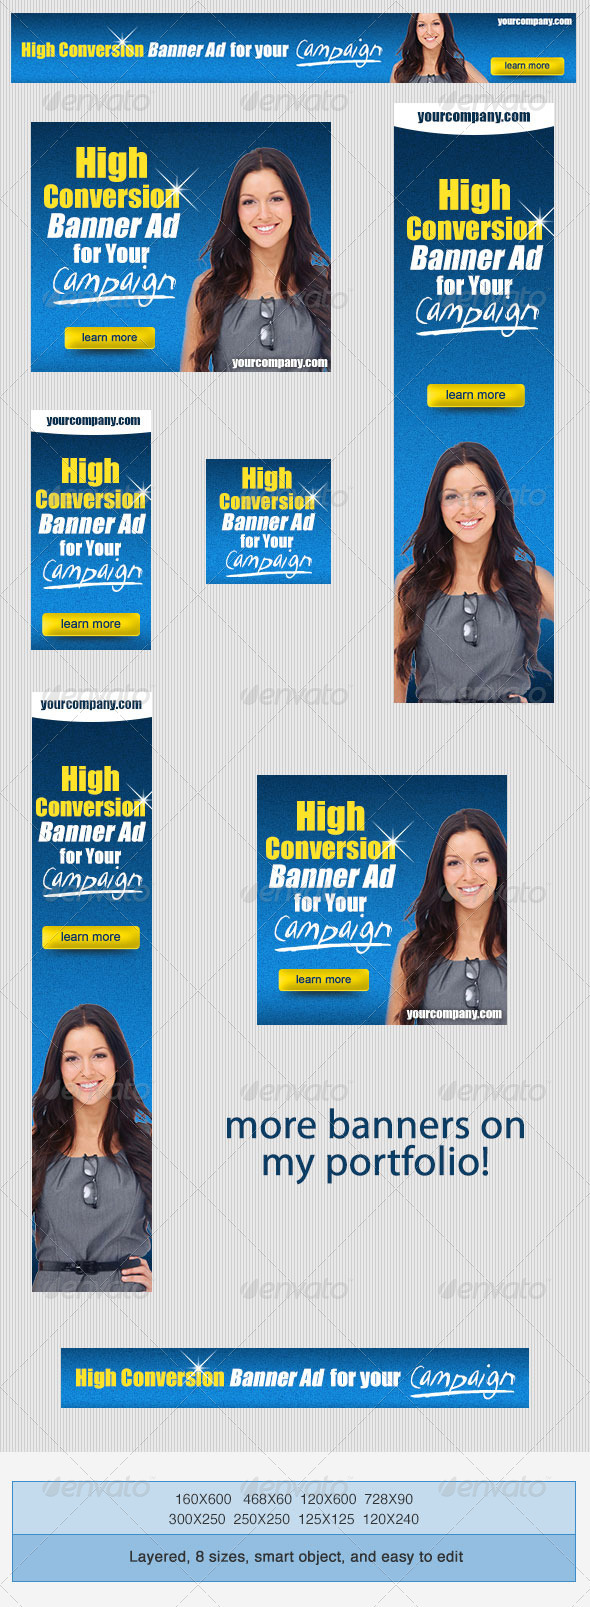 GraphicRiver High Conversion Banner Ad PSD Template 3945766